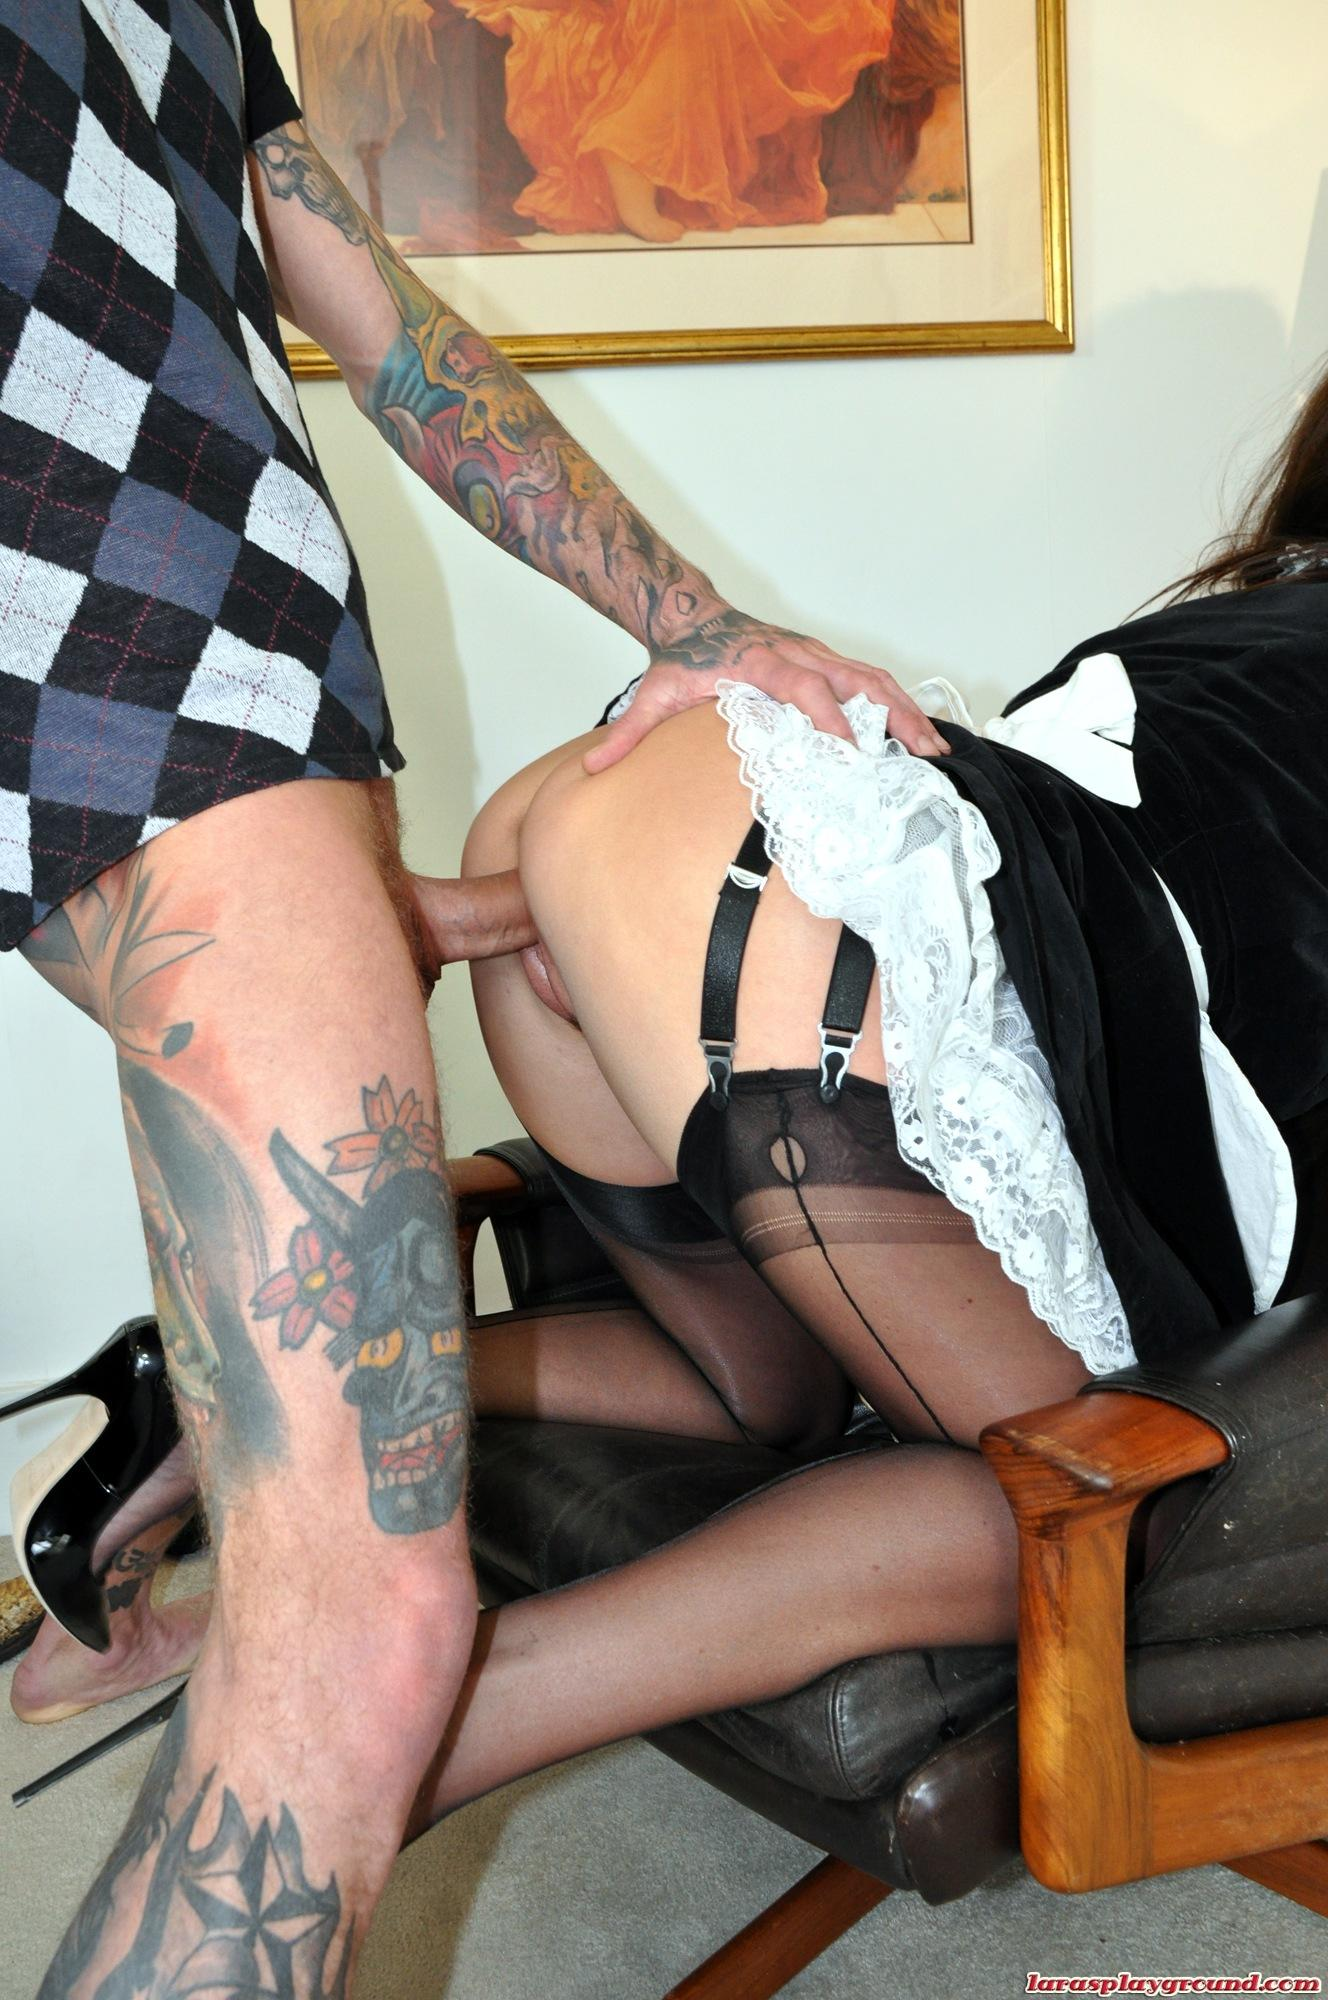 Sexy blonde maid fucked by client - 3 3